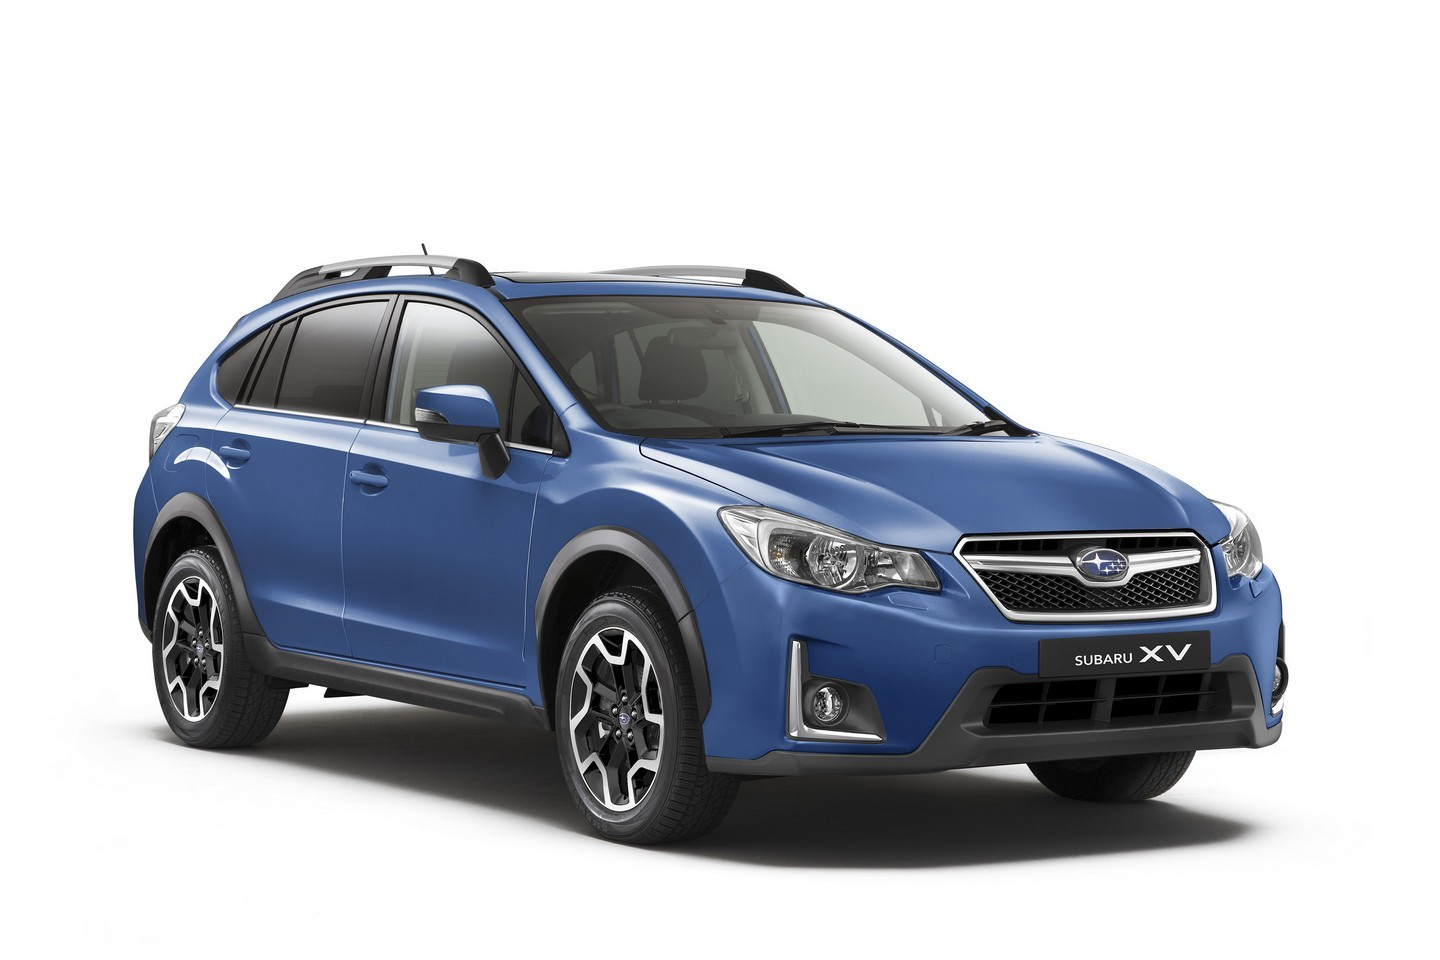 2016 Subaru Xv Gains New Features In Uk Price Capped At 163